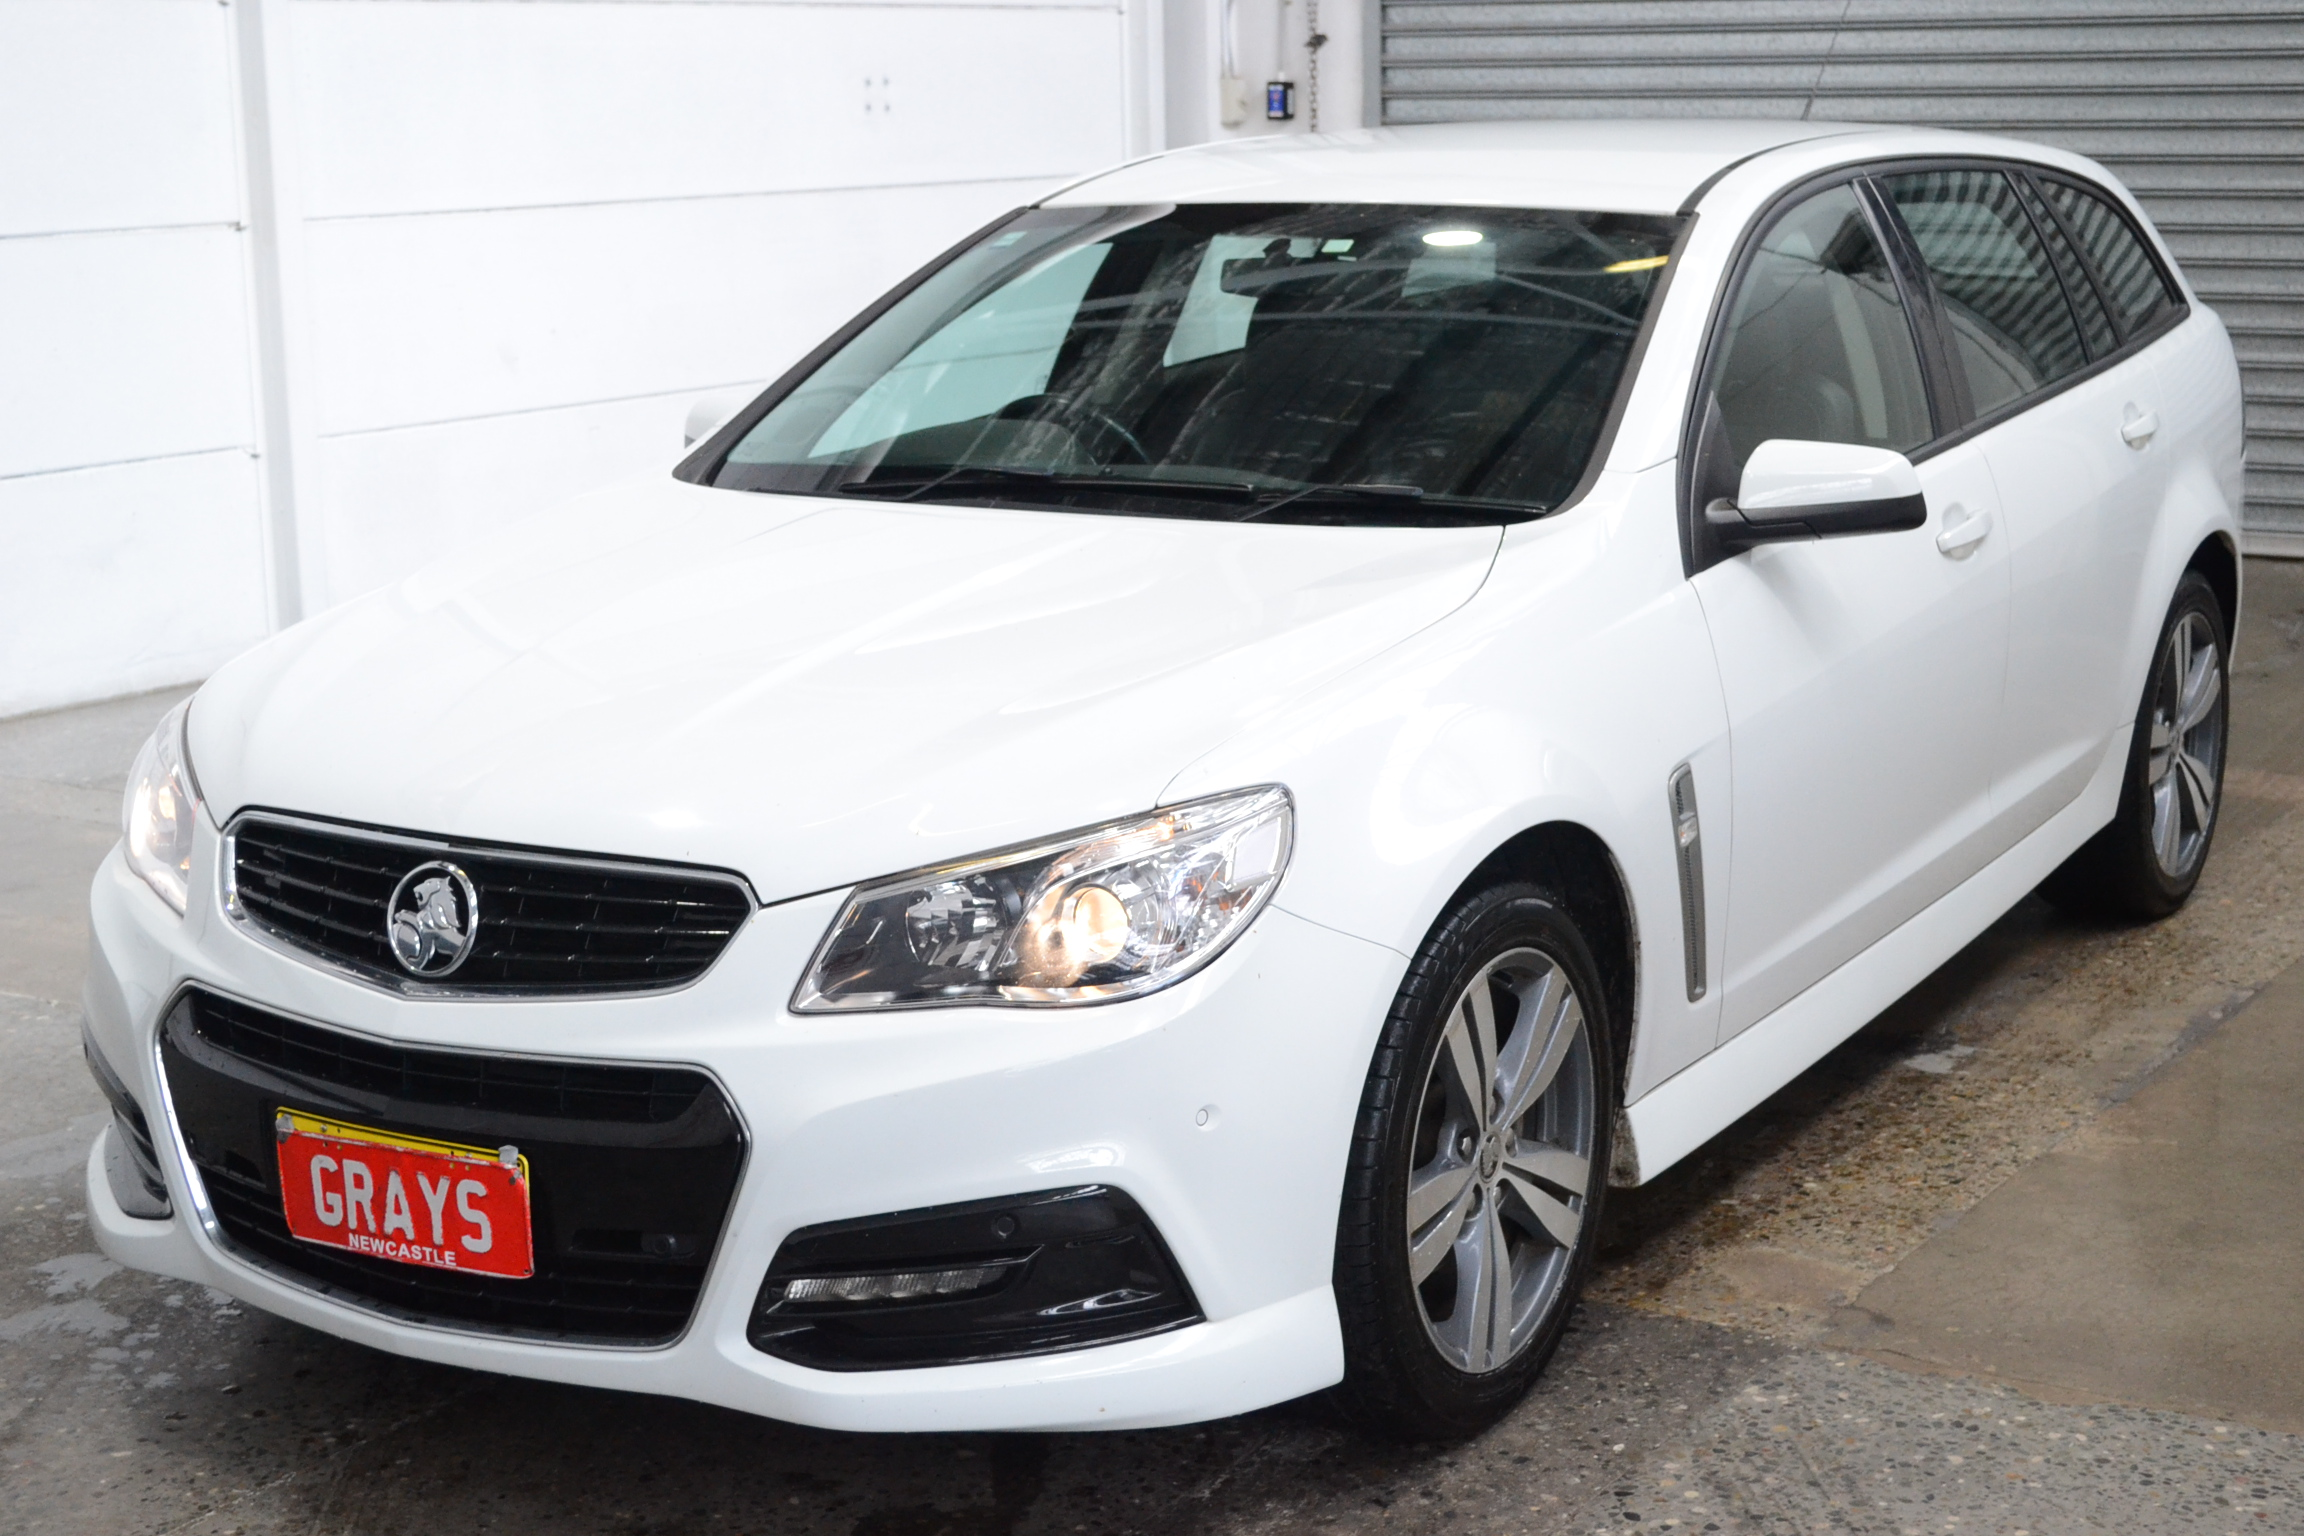 2014 Holden Commodore SV6 VF Automatic Wagon